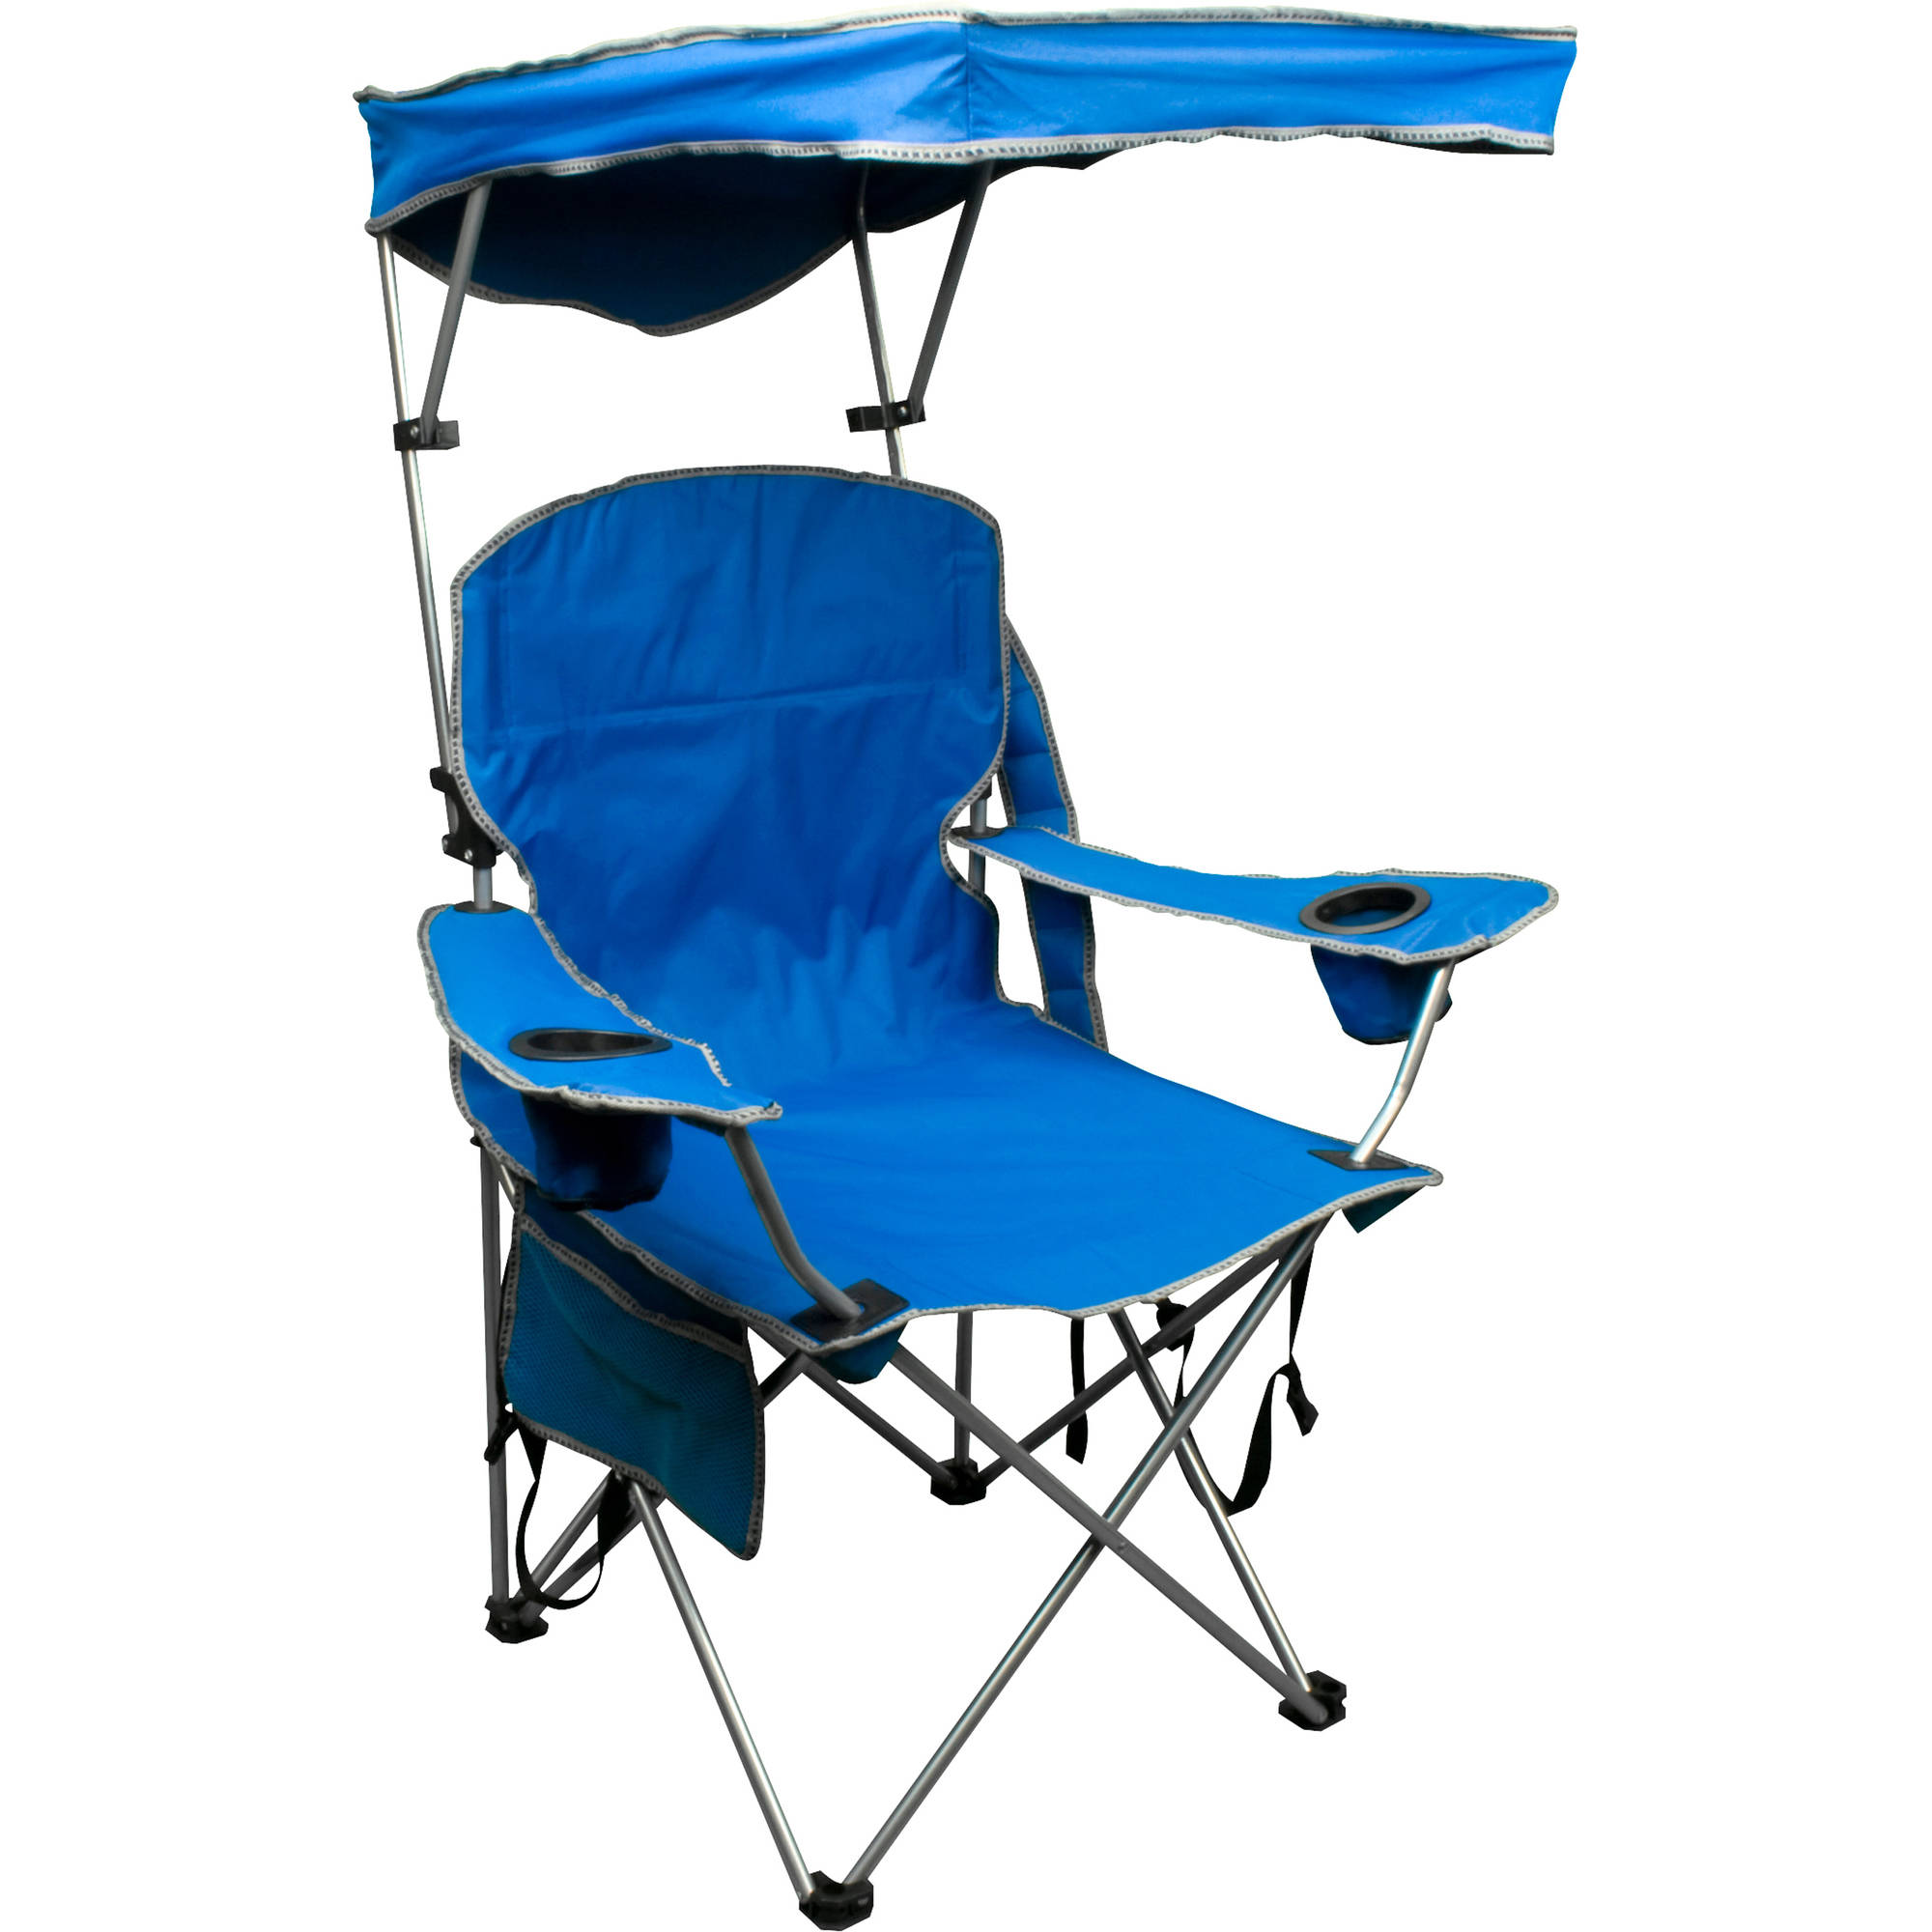 outdoor camping heavy beach product carrying foldable bag for chairs ultralight backpacking folding chair table small with duty compact portable